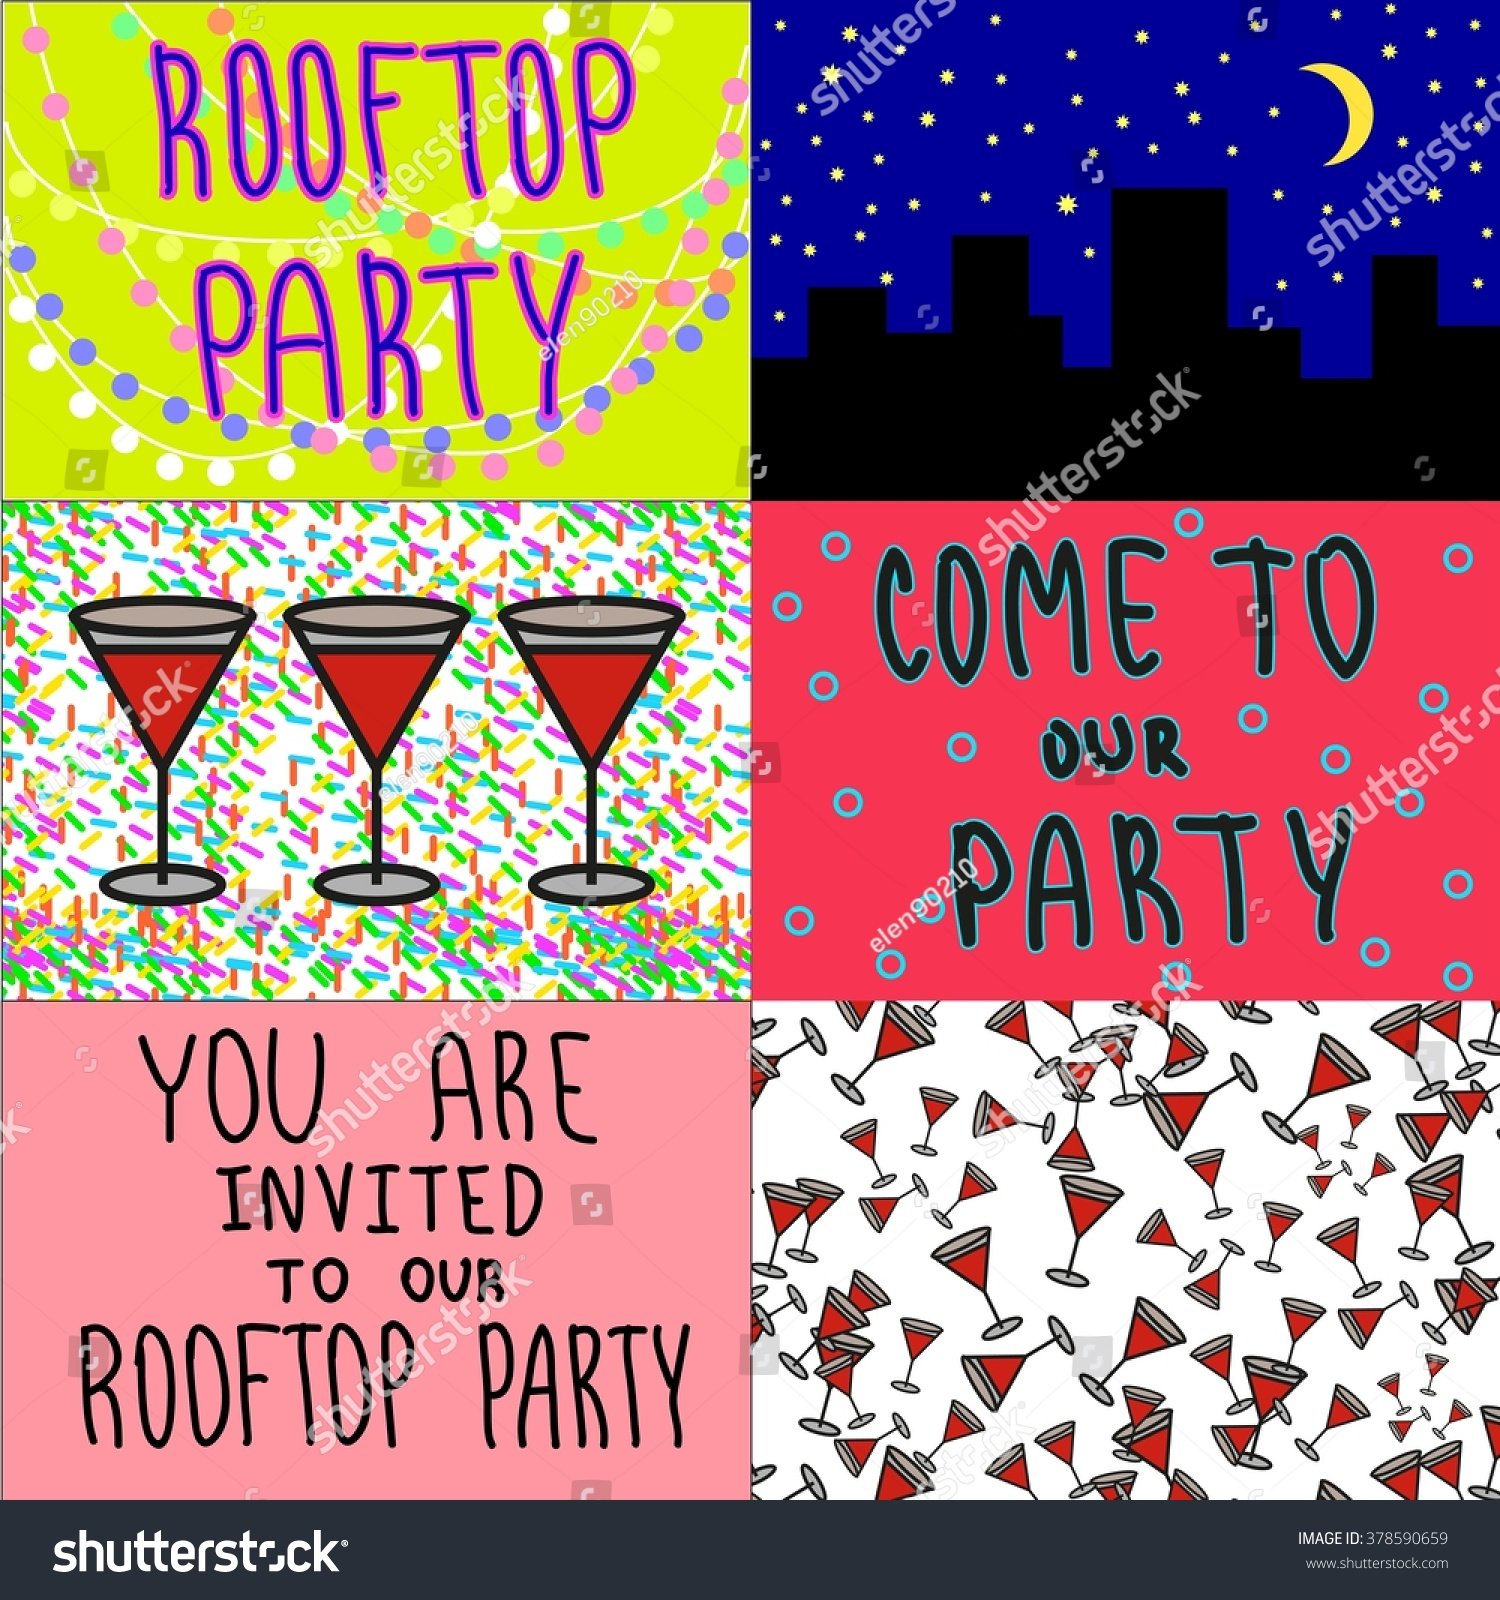 Rooftop Roof Top Night Party Invitation Stock Vector (Royalty Free ...